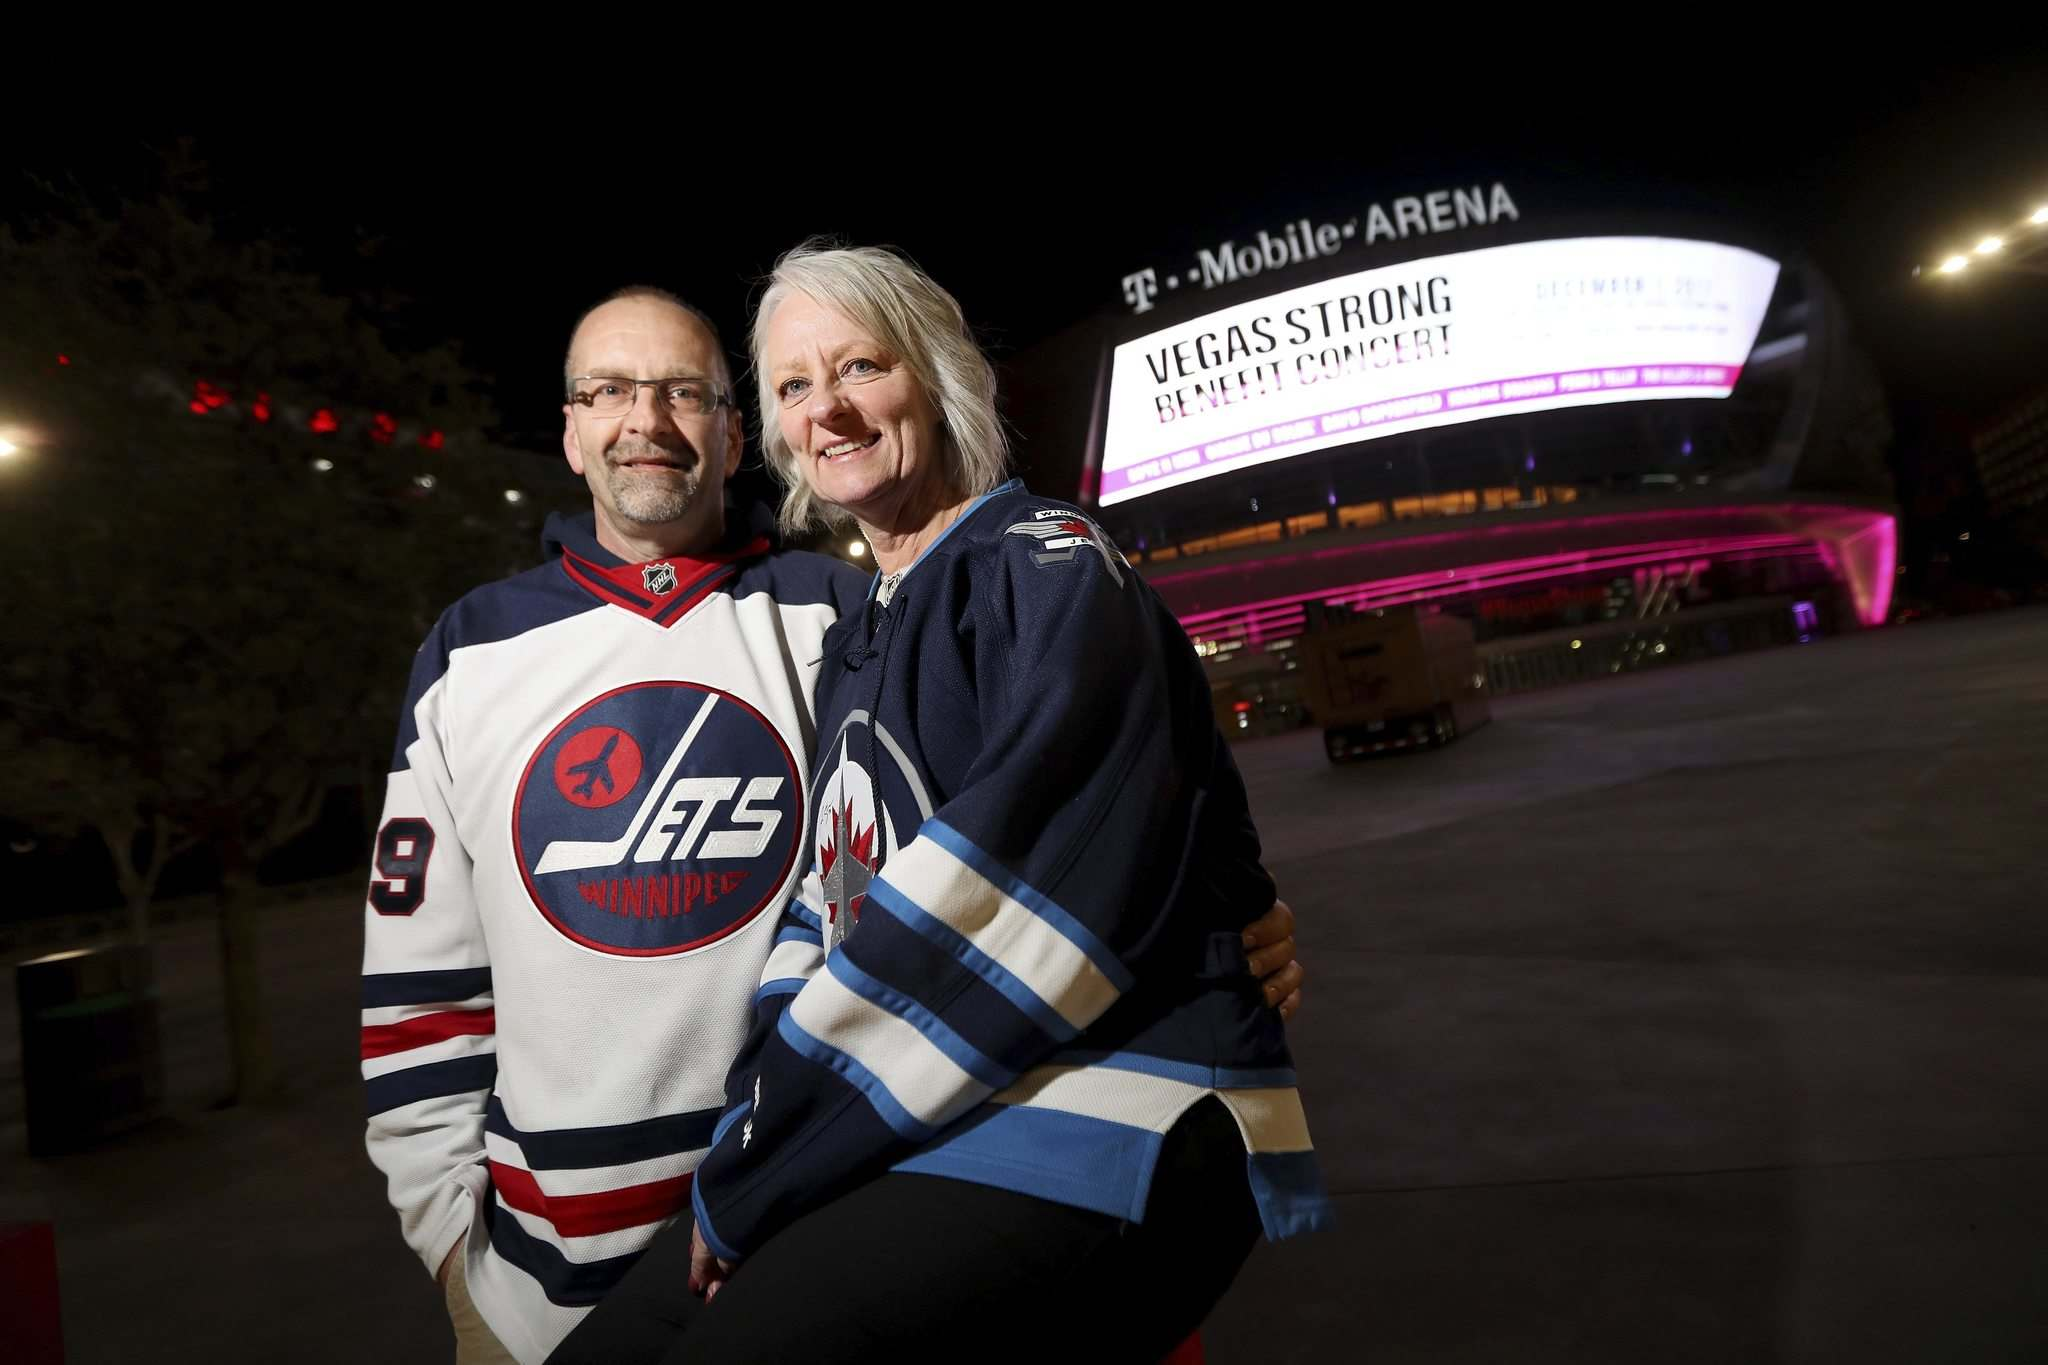 <p>Jack and Kathy Swar, from Winnipeg, near T-Mobile Arena, are among many who came Las Vegas to watch the Winnipeg Jets take on the Vegas Golden Knights.</p>